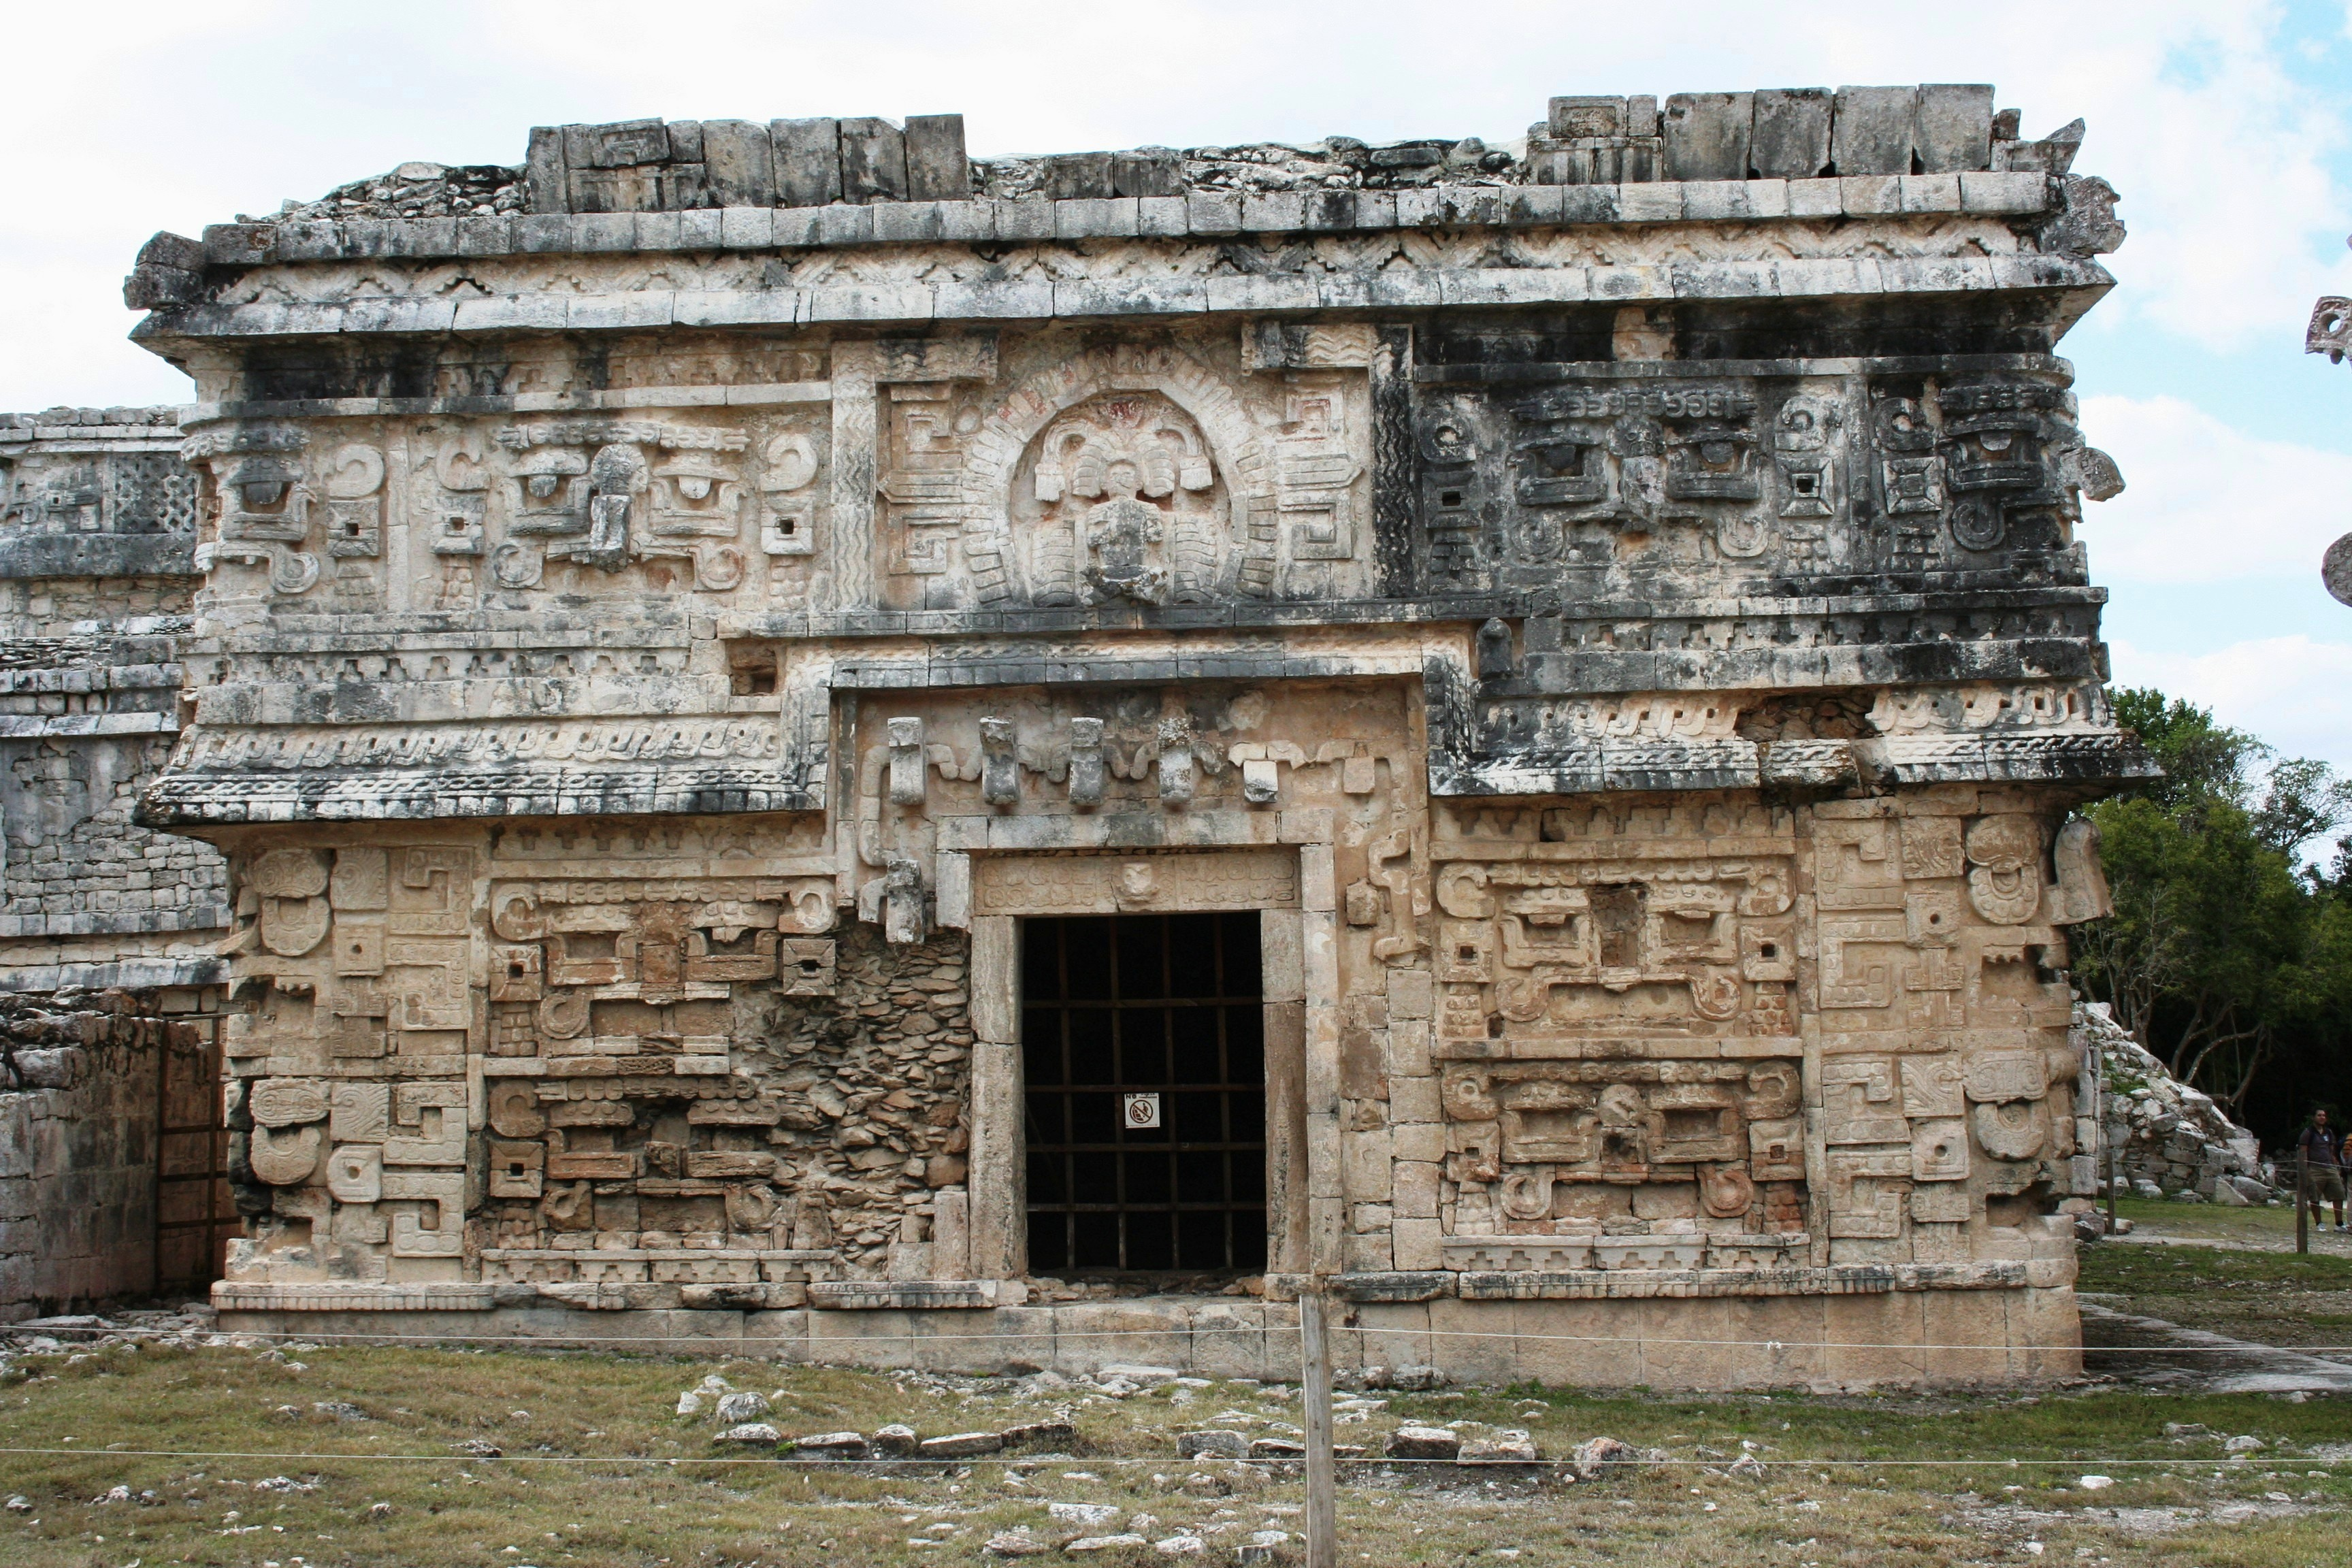 Building at Chichen Itza